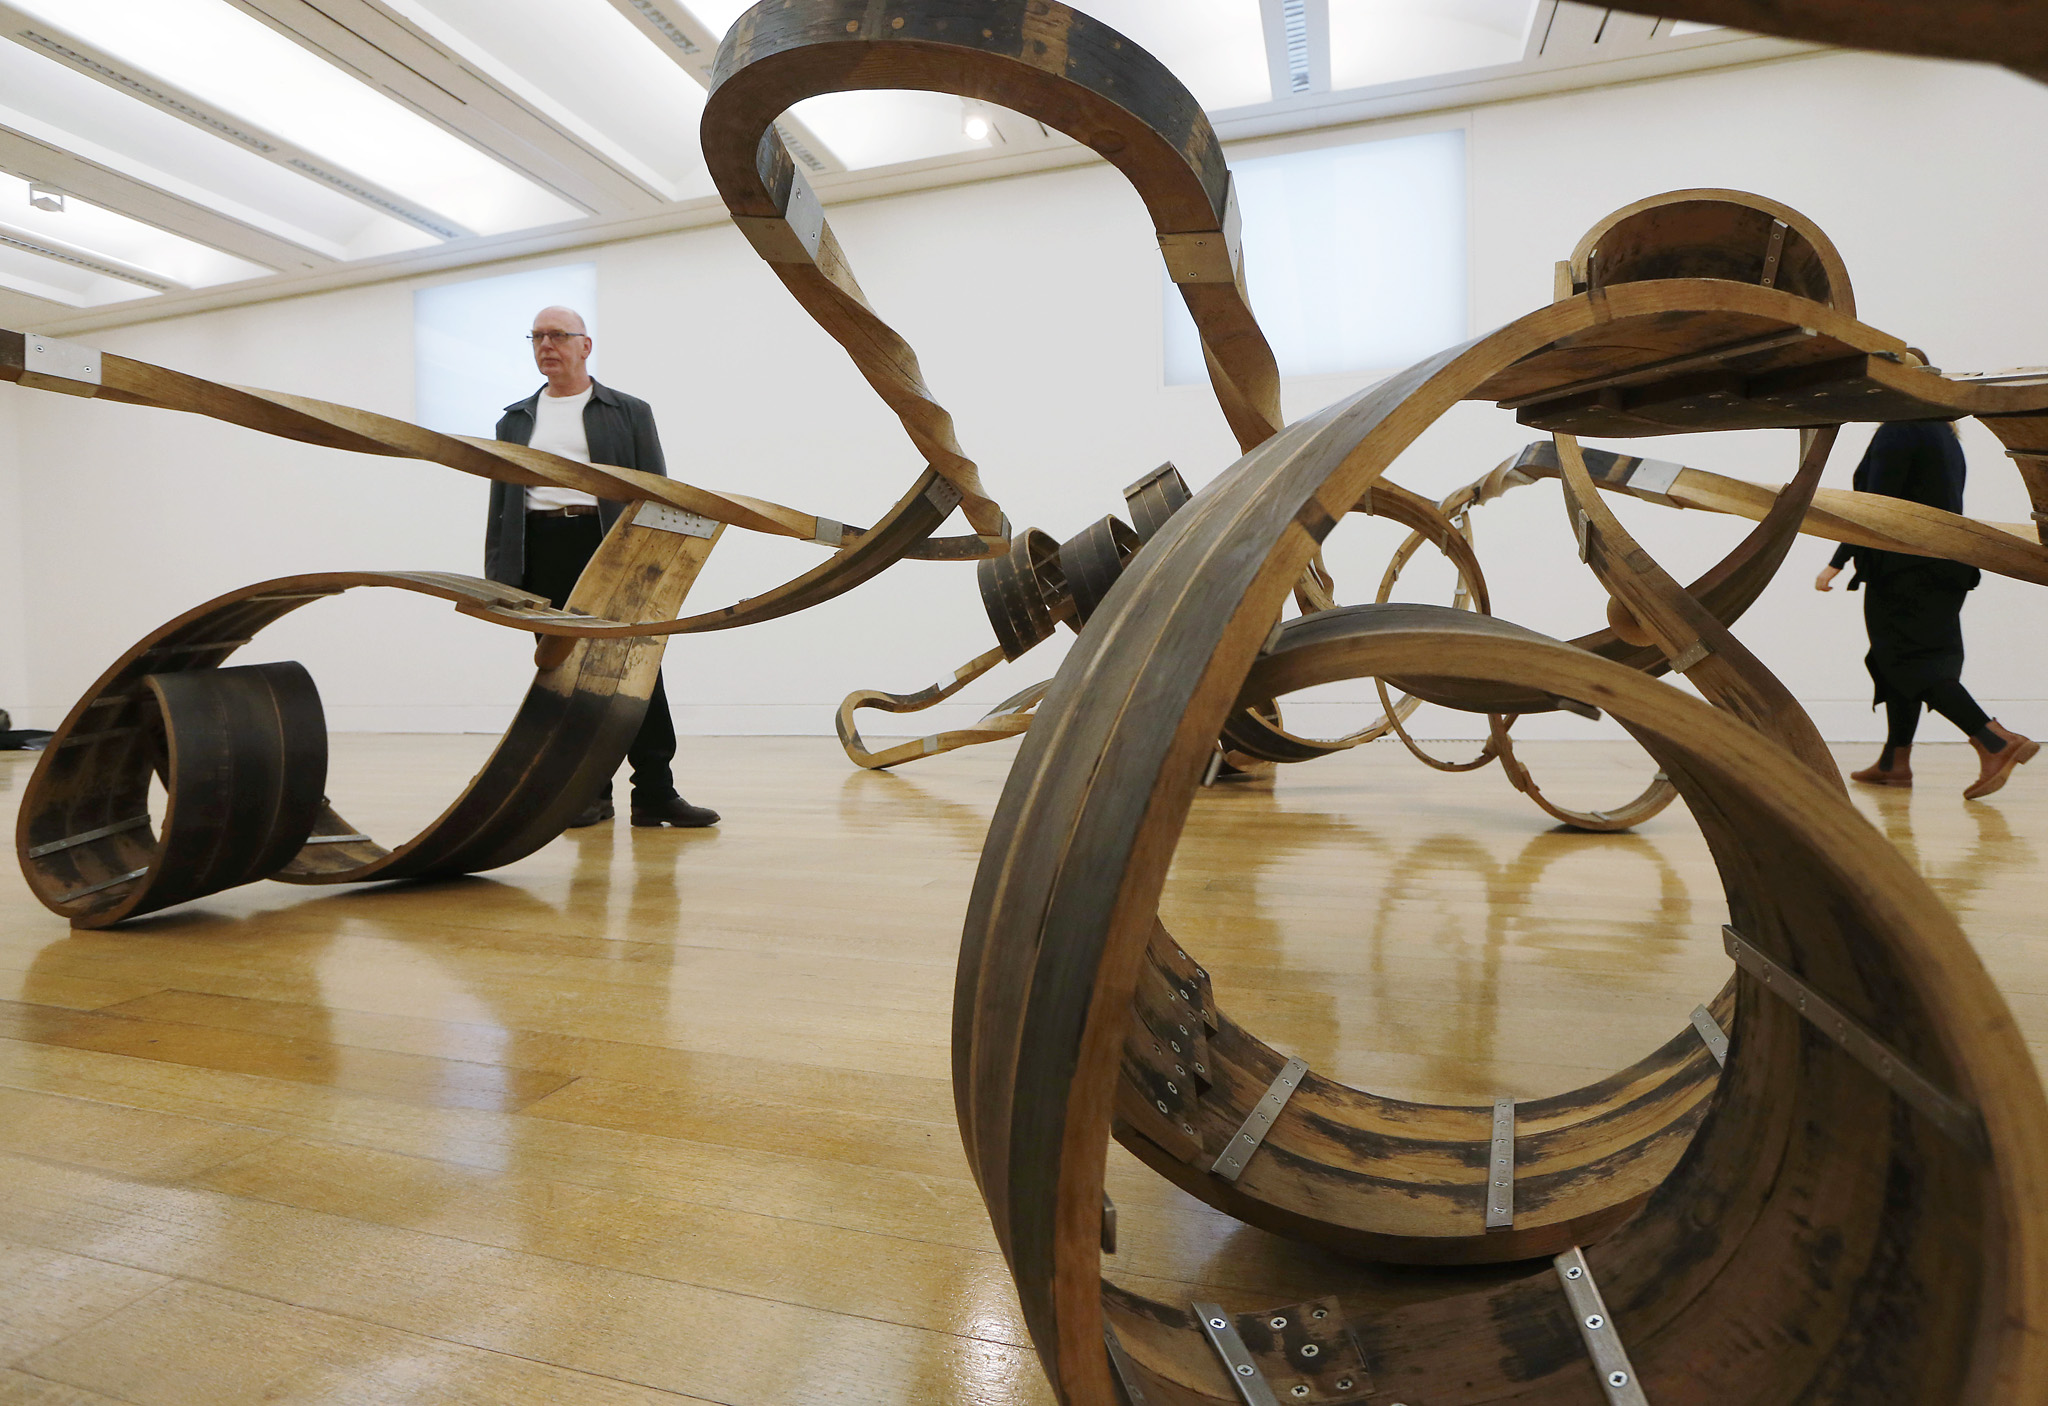 Richard Deacon...British artist and Turner Prize winner Richard Deacon poses with his sculpture 'Out of Order 2003' at Tate Britain art gallery in London during the launch of the exhibition of his artworks at the gallery, Monday Feb. 3, 2014.